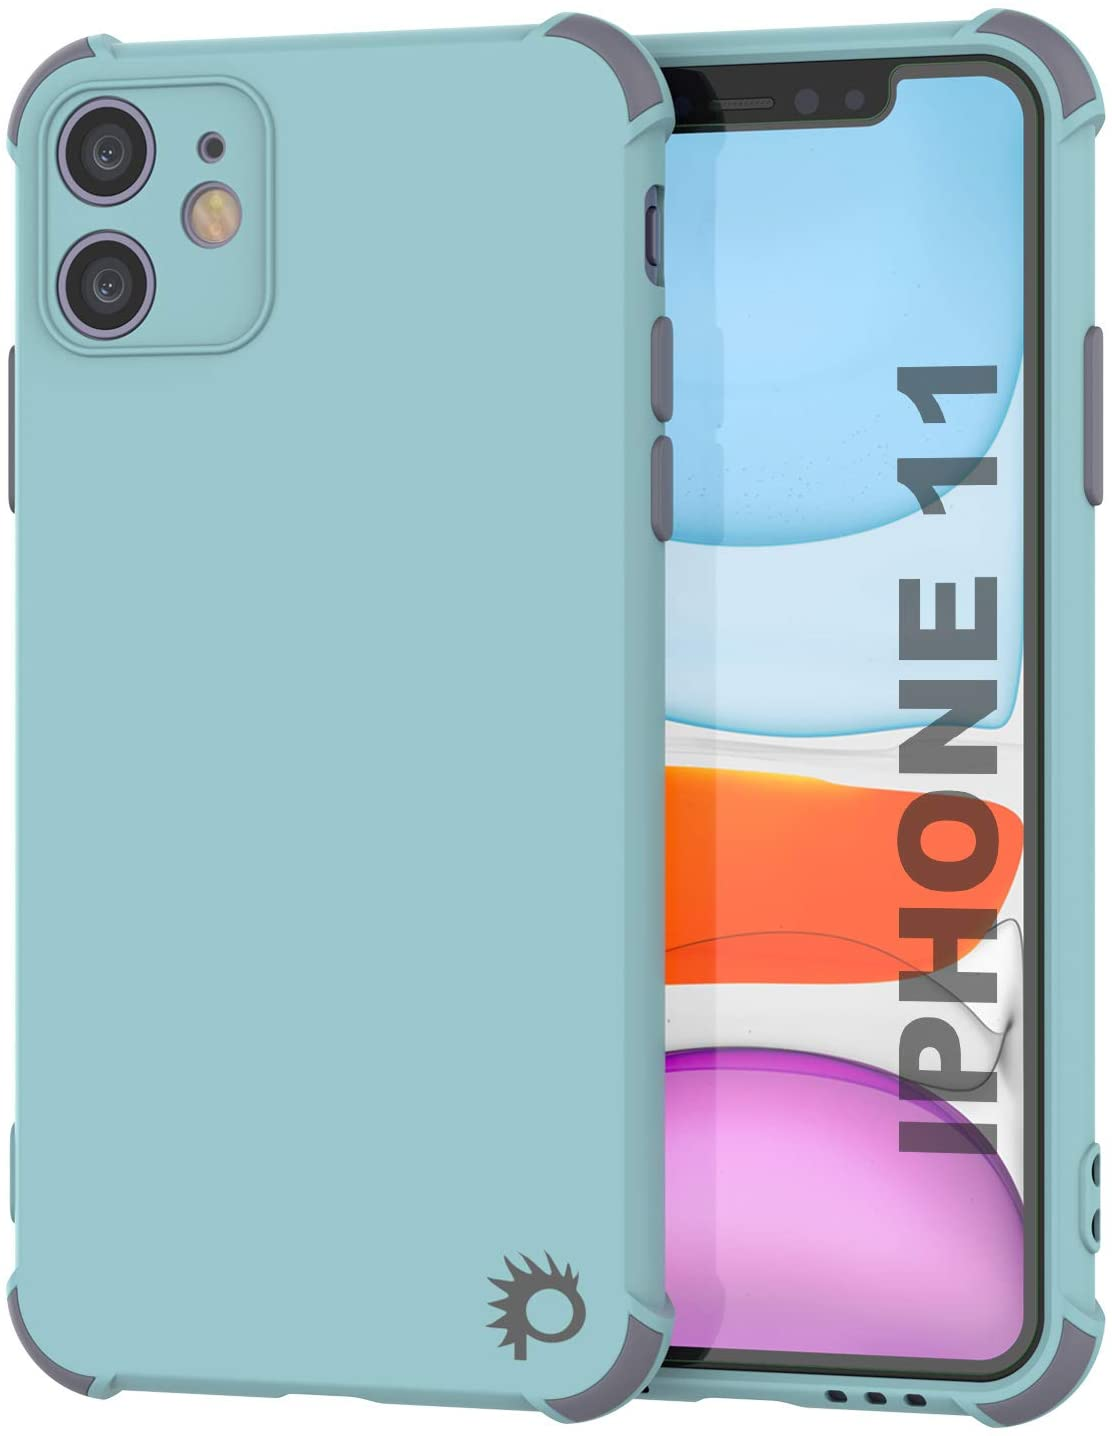 Punkcase Protective & Lightweight TPU Case [Sunshine Series] for iPhone 11 [Teal]